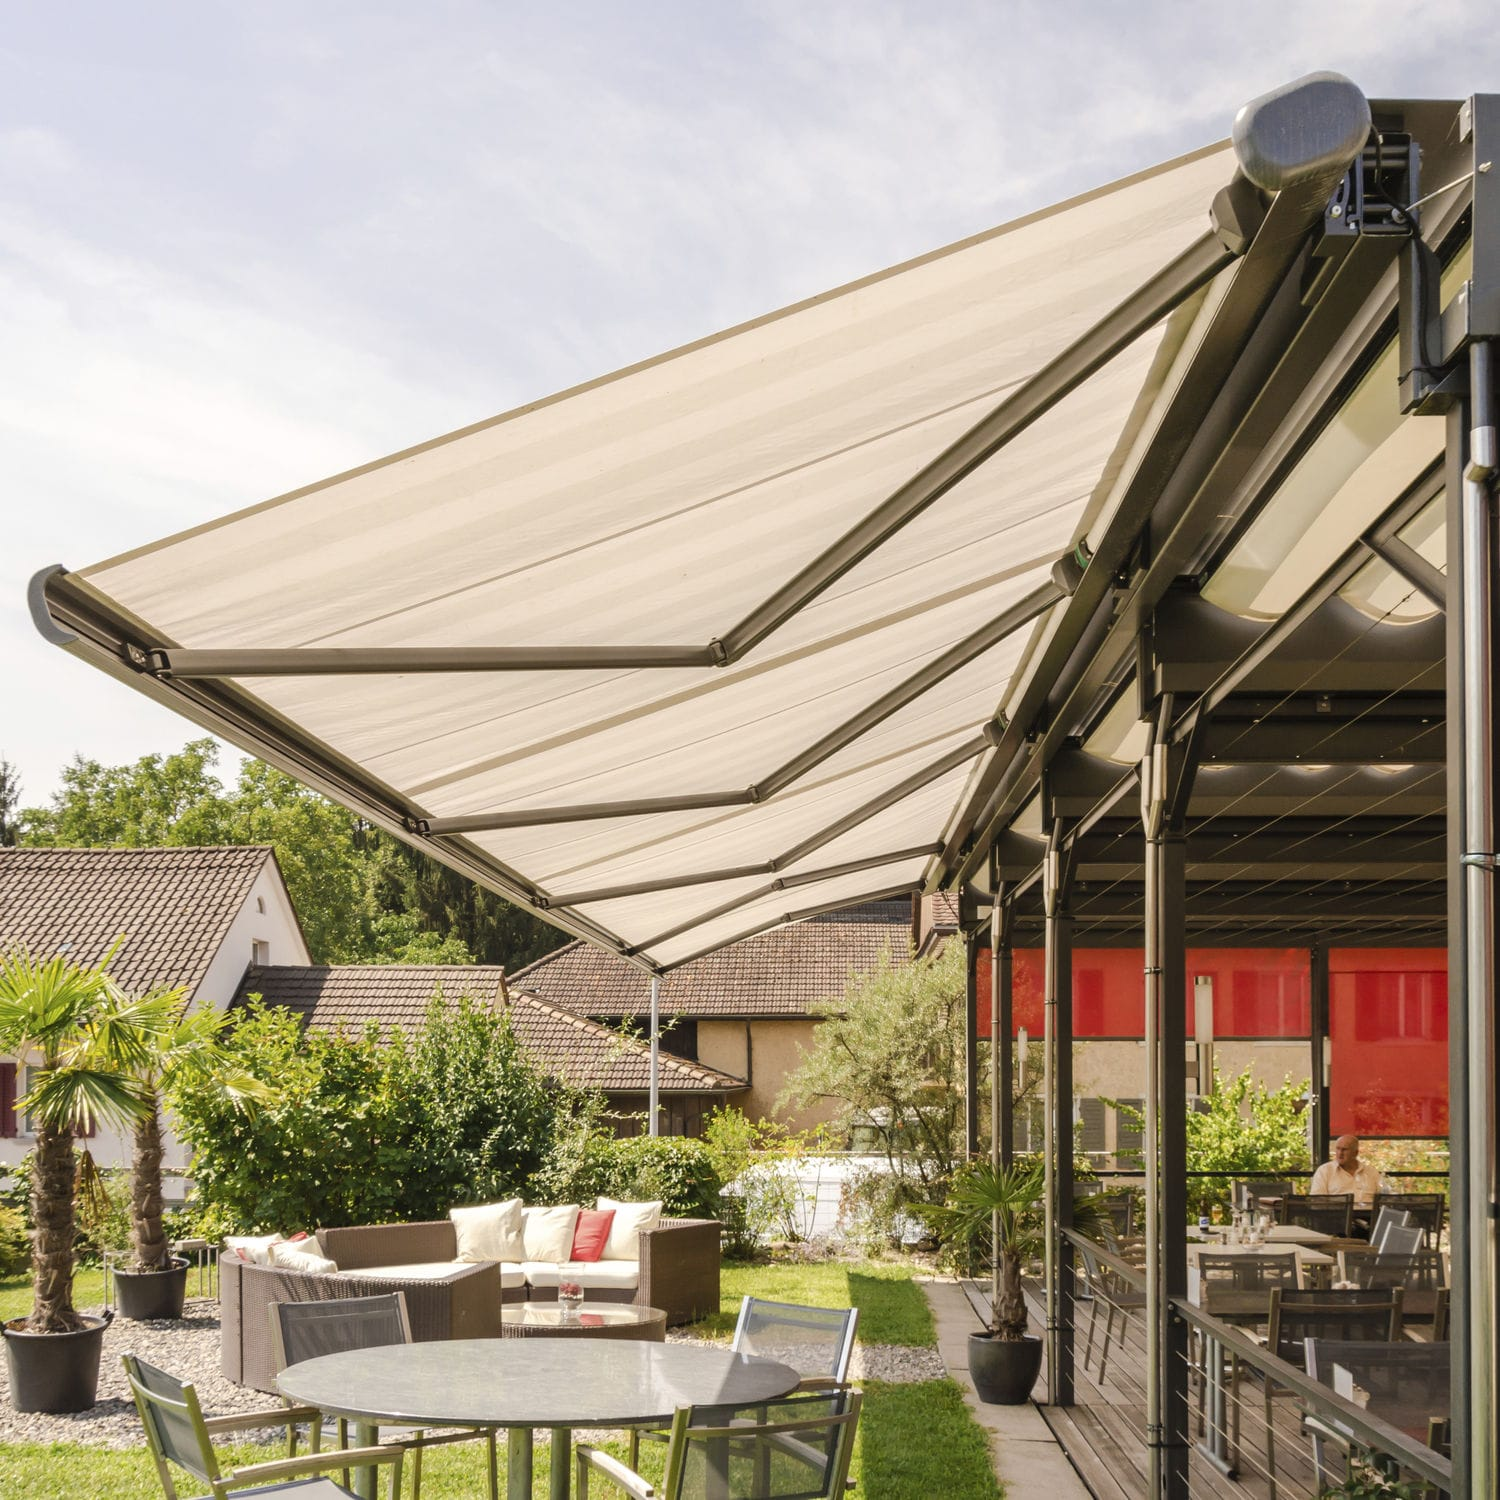 folding retractableawnings awning fabric arm color palermo retractable solid lateral frame plus com white awnings the products